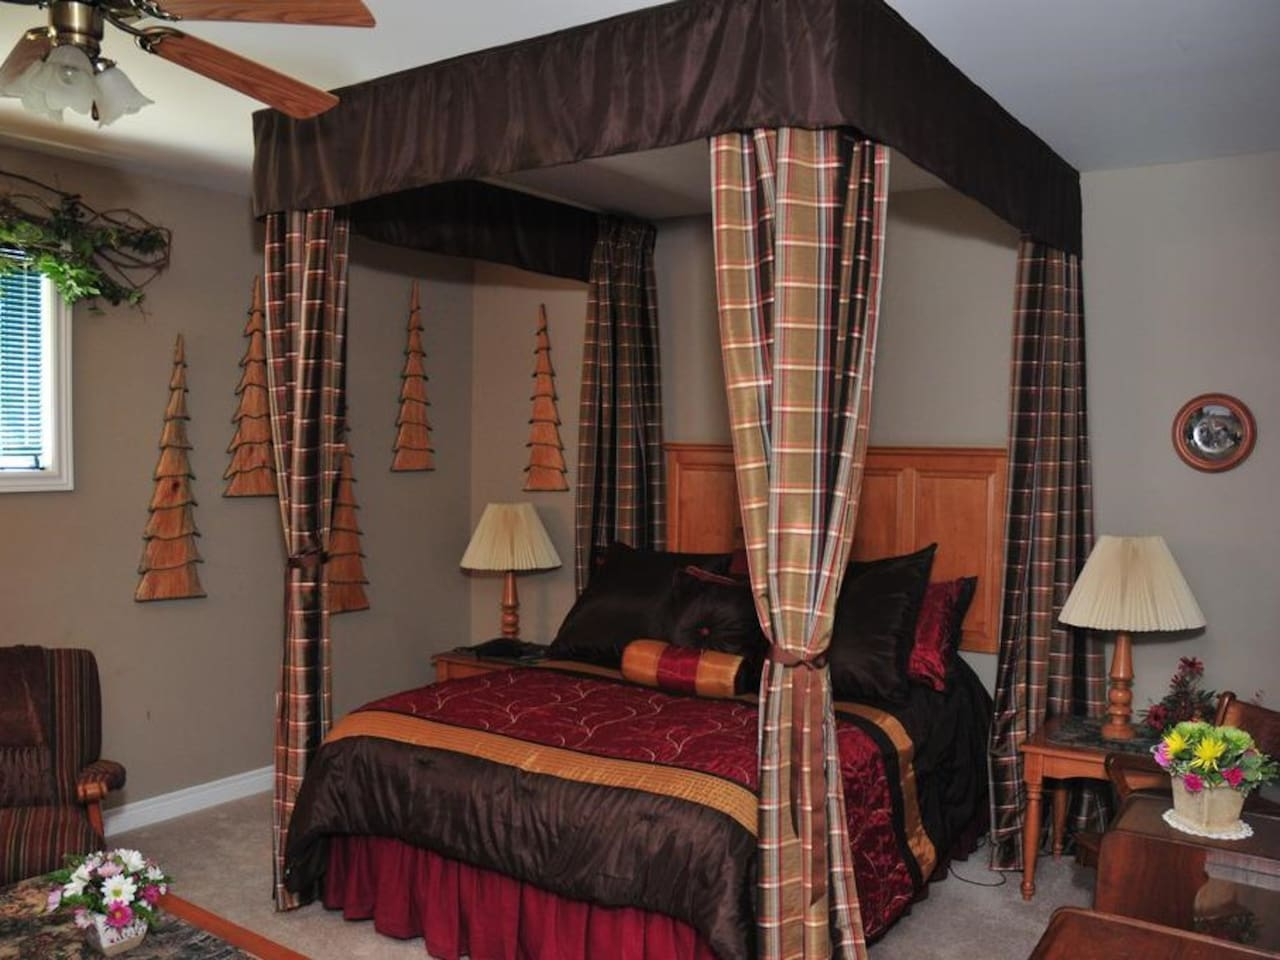 Ferndale Room - Canopy Queen with Sealy Posturepedic  Mattress